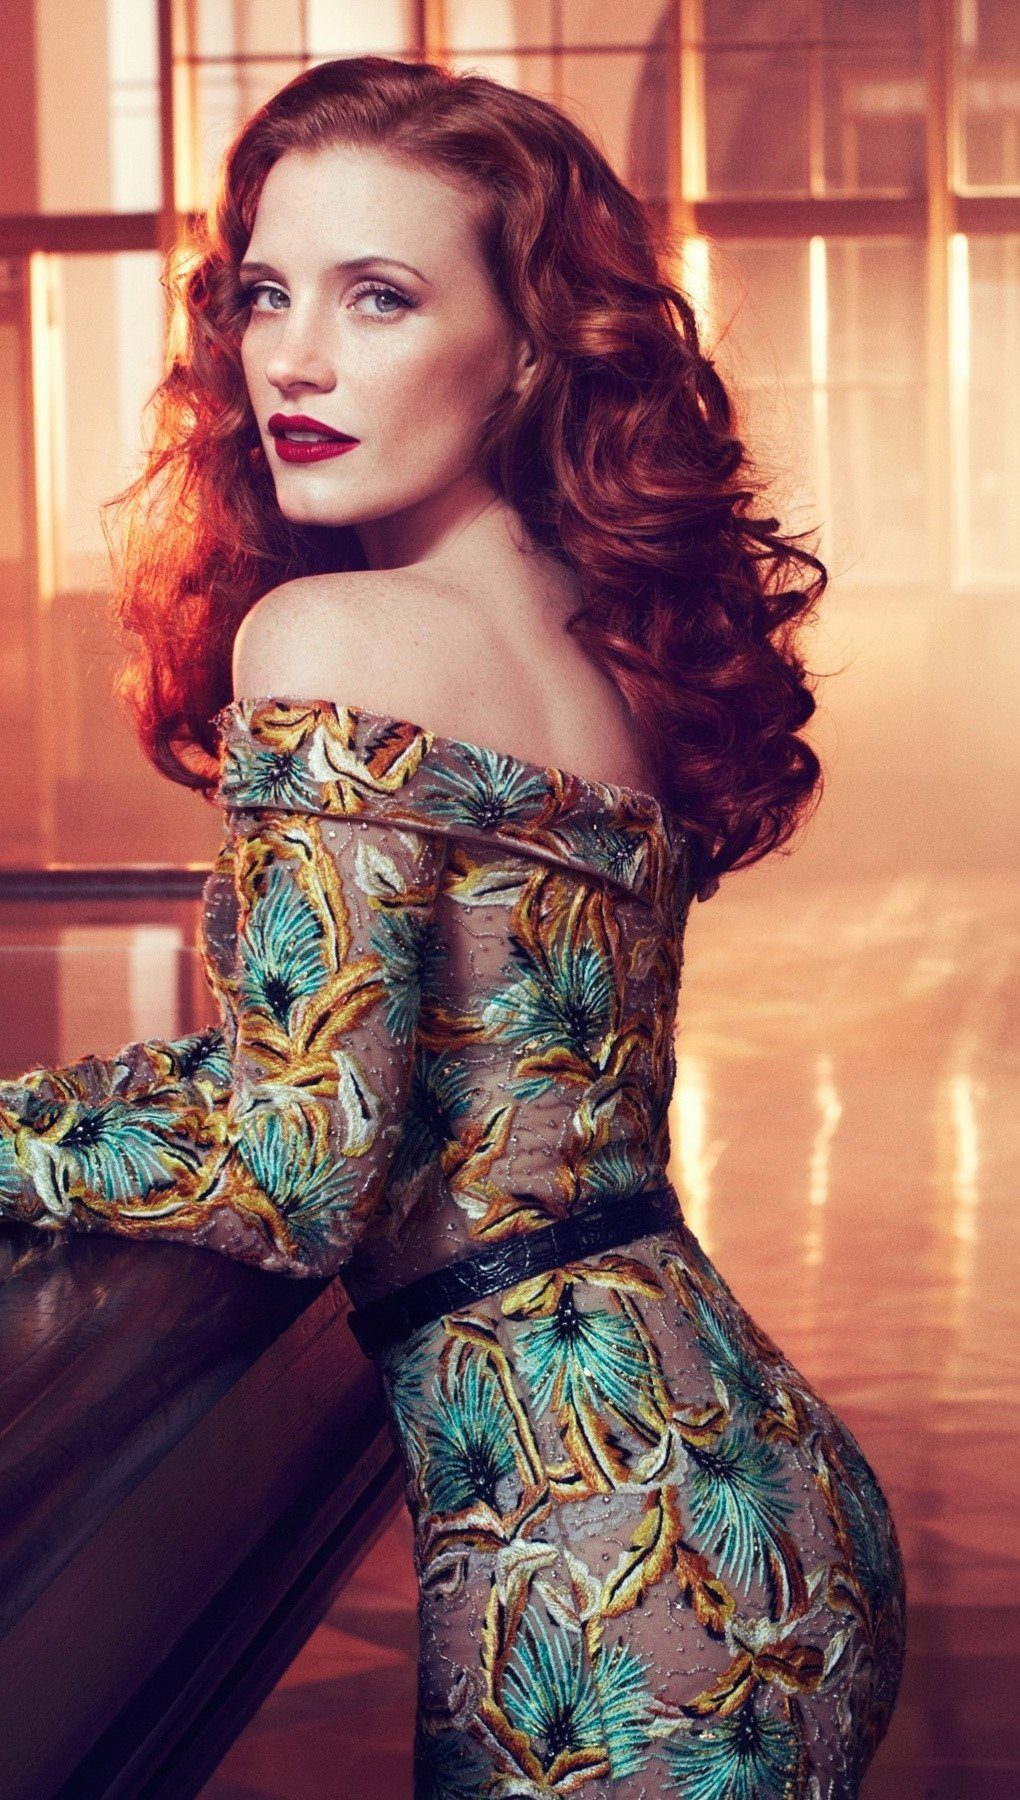 Wallpaper Jessica Chastain in a bar Vertical